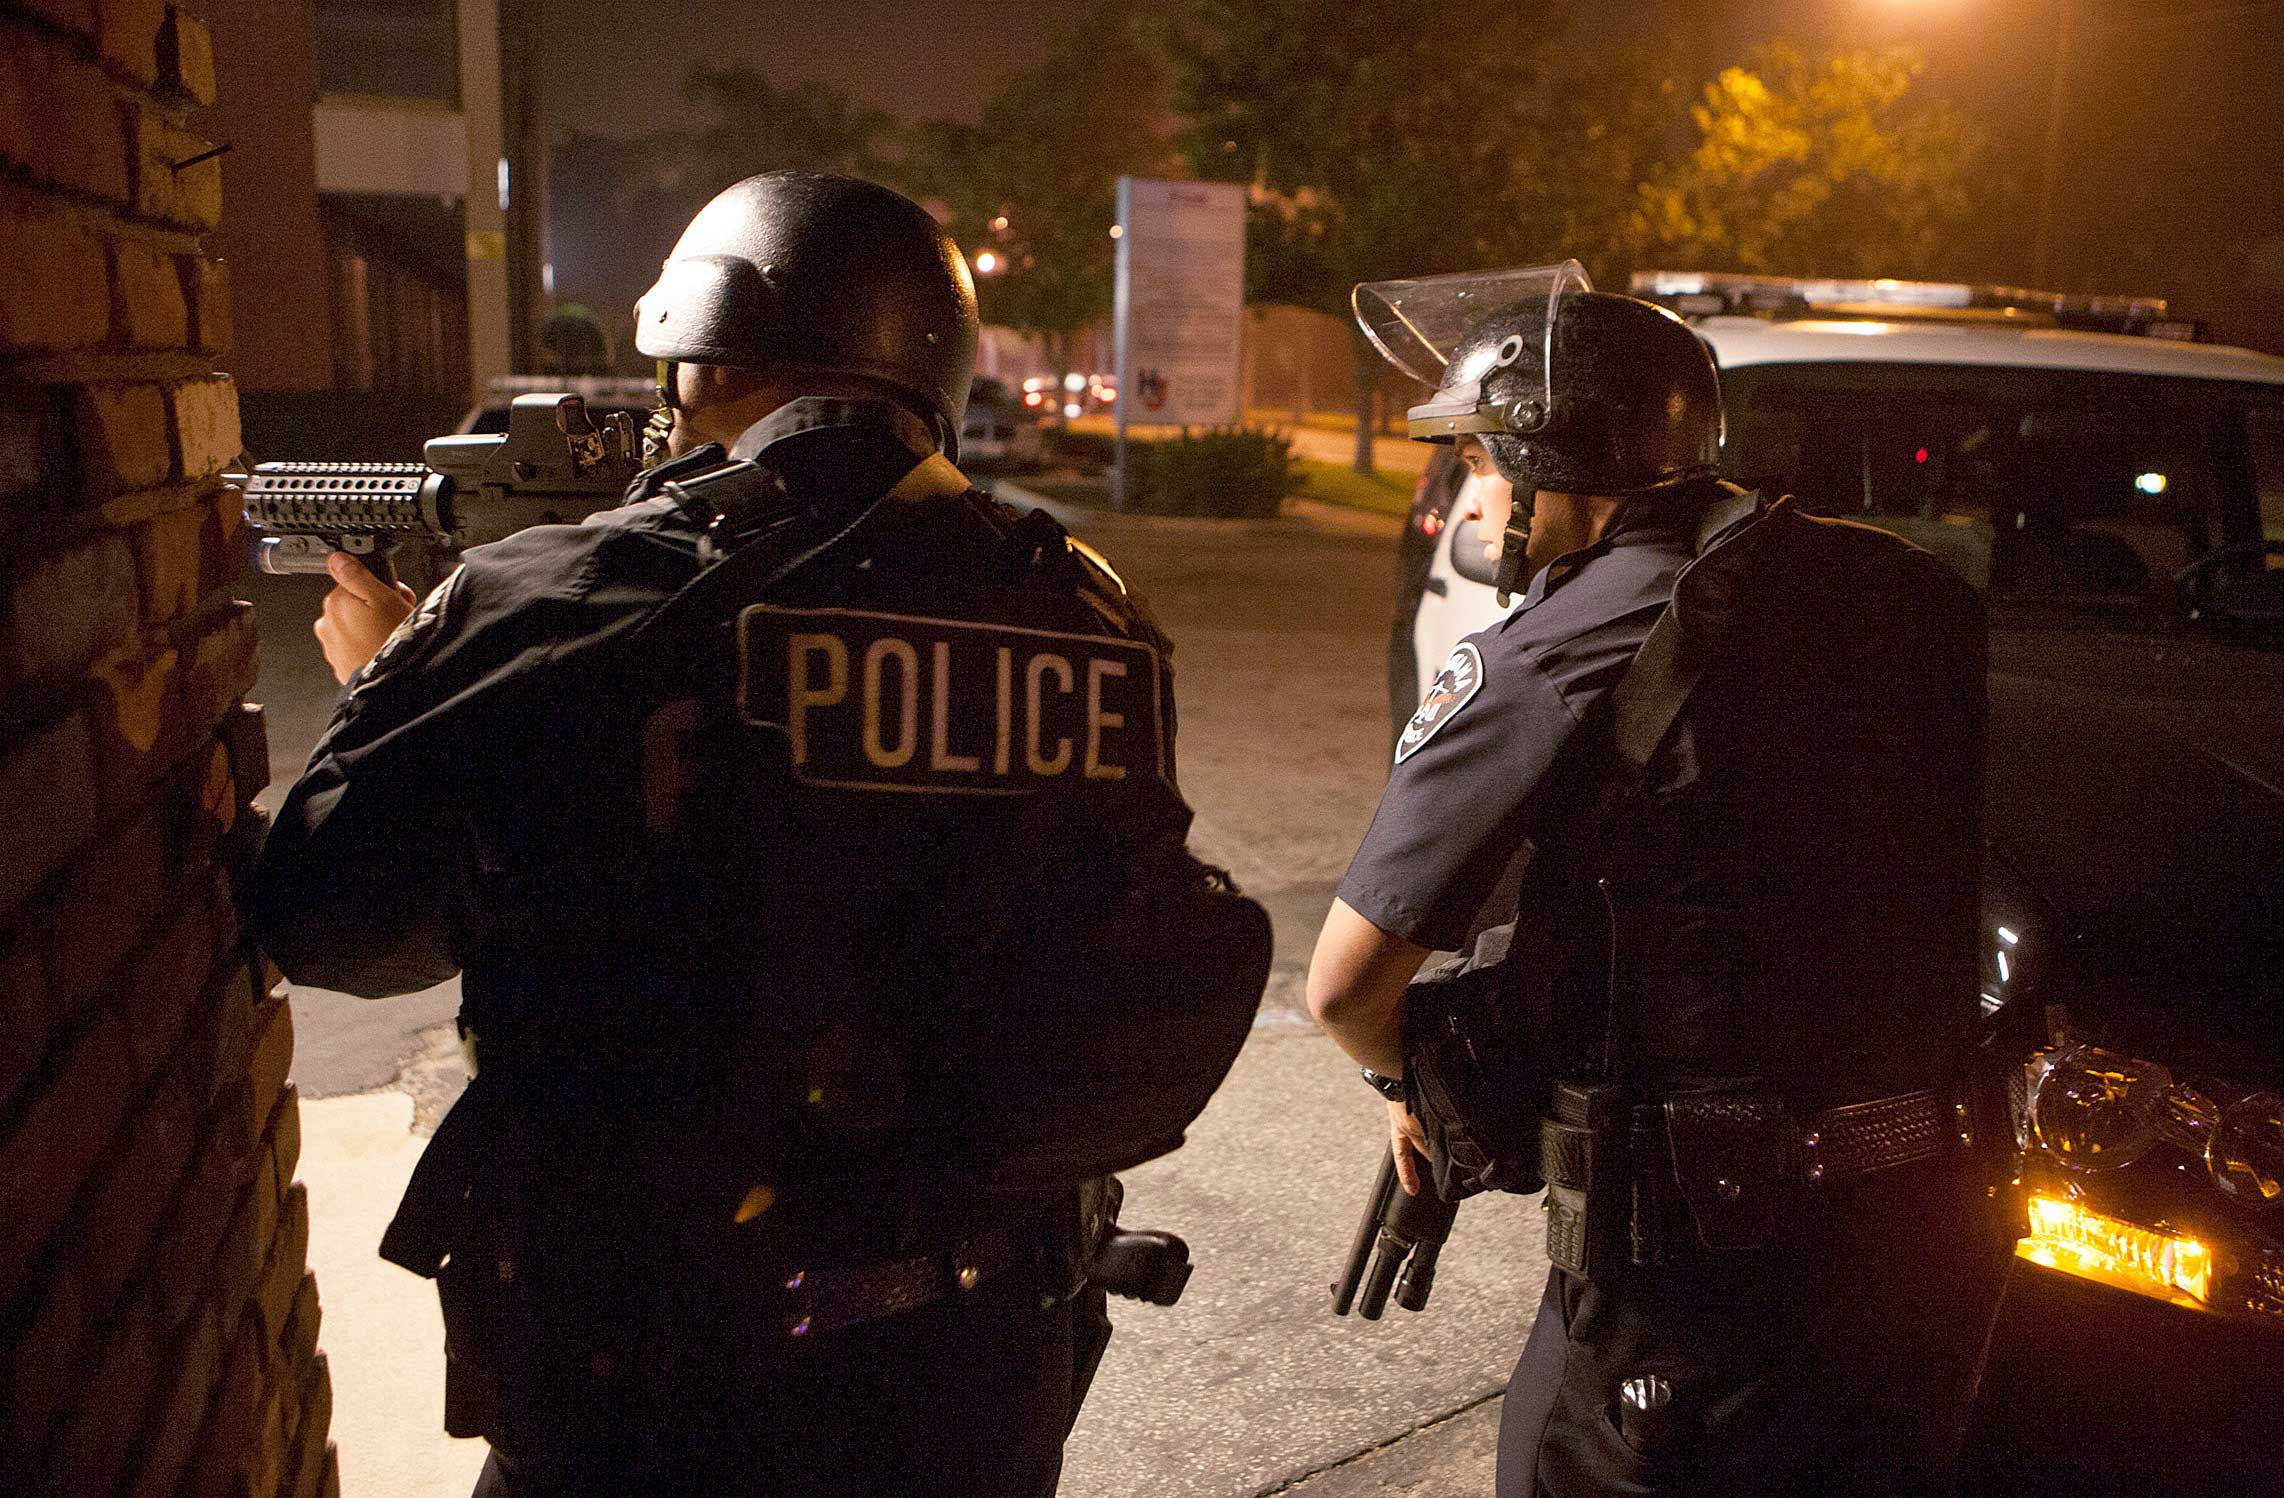 Police respond in Riverside, Calif., Feb. 7, 2013.